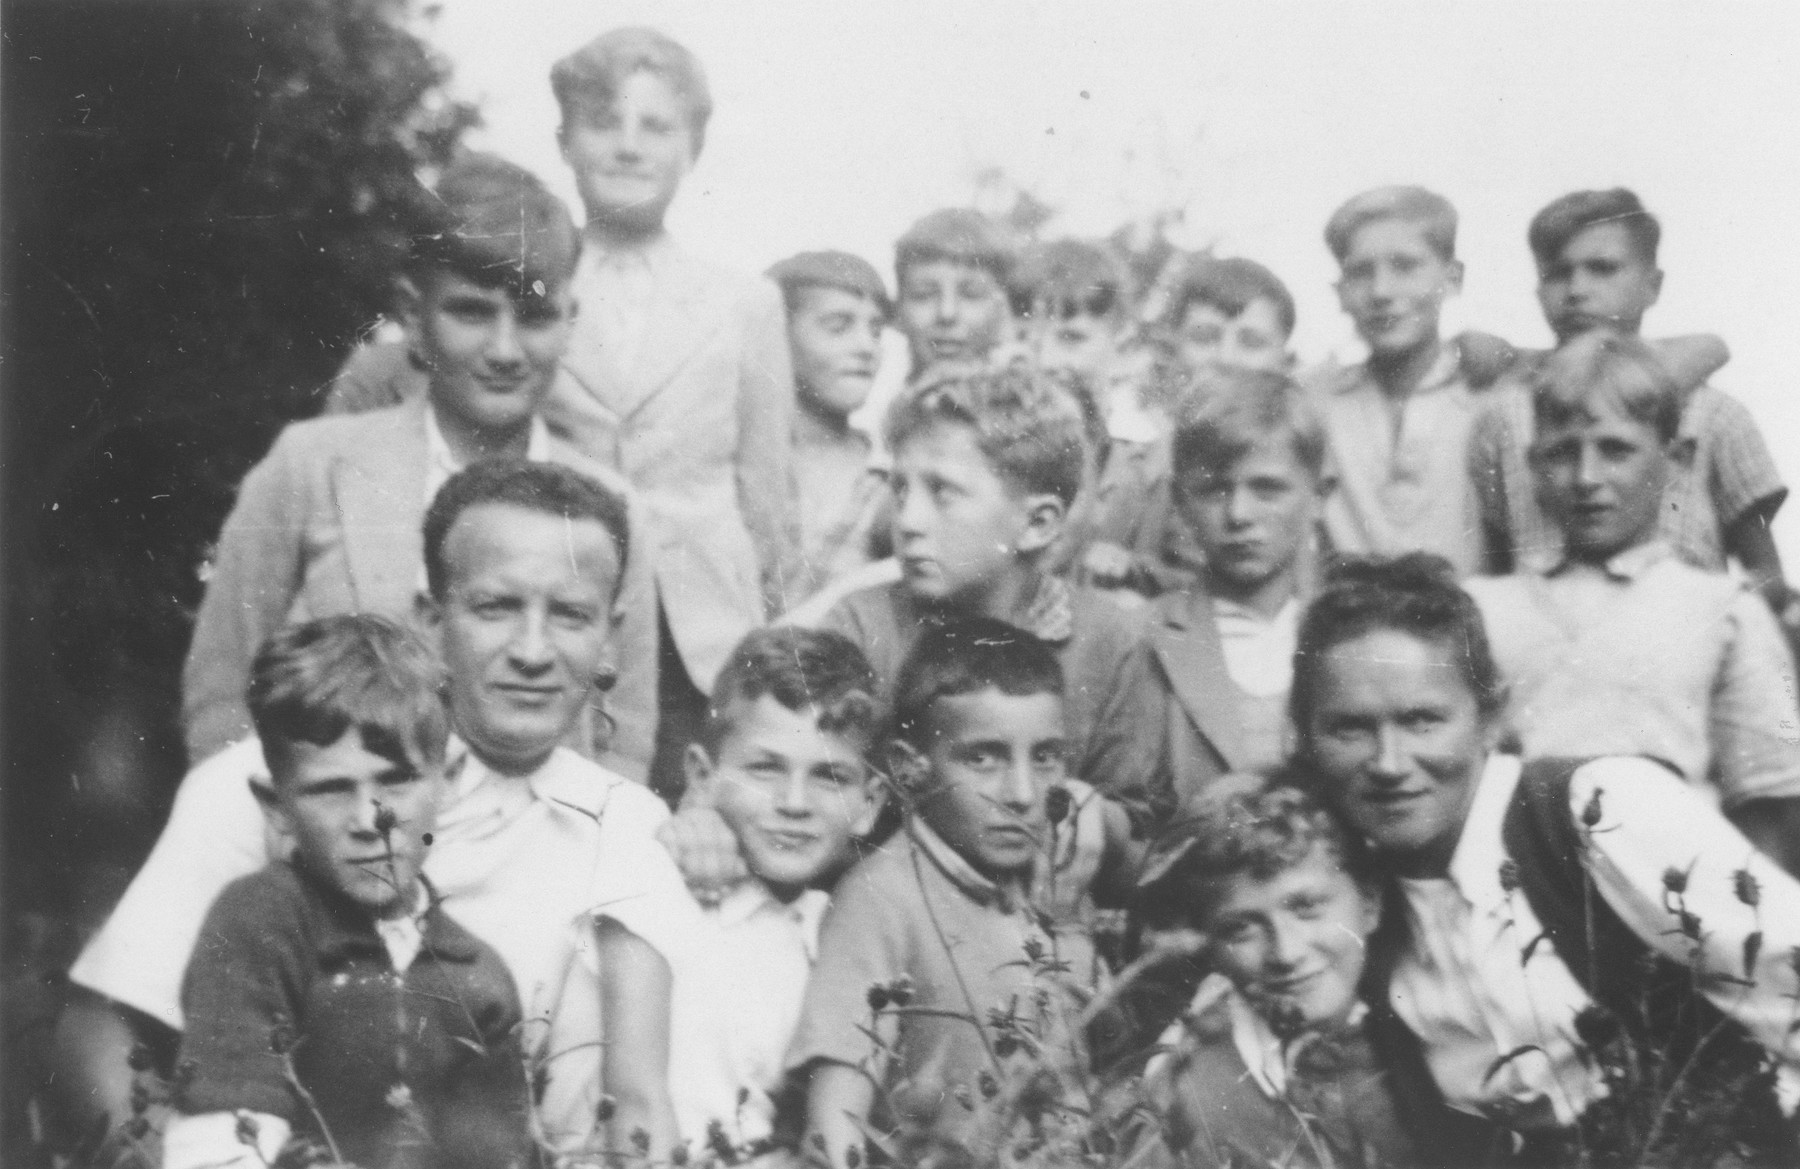 OSE teachers Mr. and Mrs. Zitta Zylberstein pose with a group of children outside the Chabannes children's home.  Also pictured are Albert Nadel, Anatole Zylberstein, Gunter Moser, David Nadel, Hans Stern, Kurt Fischof, Norbert Bikales, Michel Bronsztein, Arno Marcuse, Georges Wajnberg, Berthold Friedlaender, Herbert Abormitter, Klaus Gossels, Gerhard Glass, and Alfred Nowack.